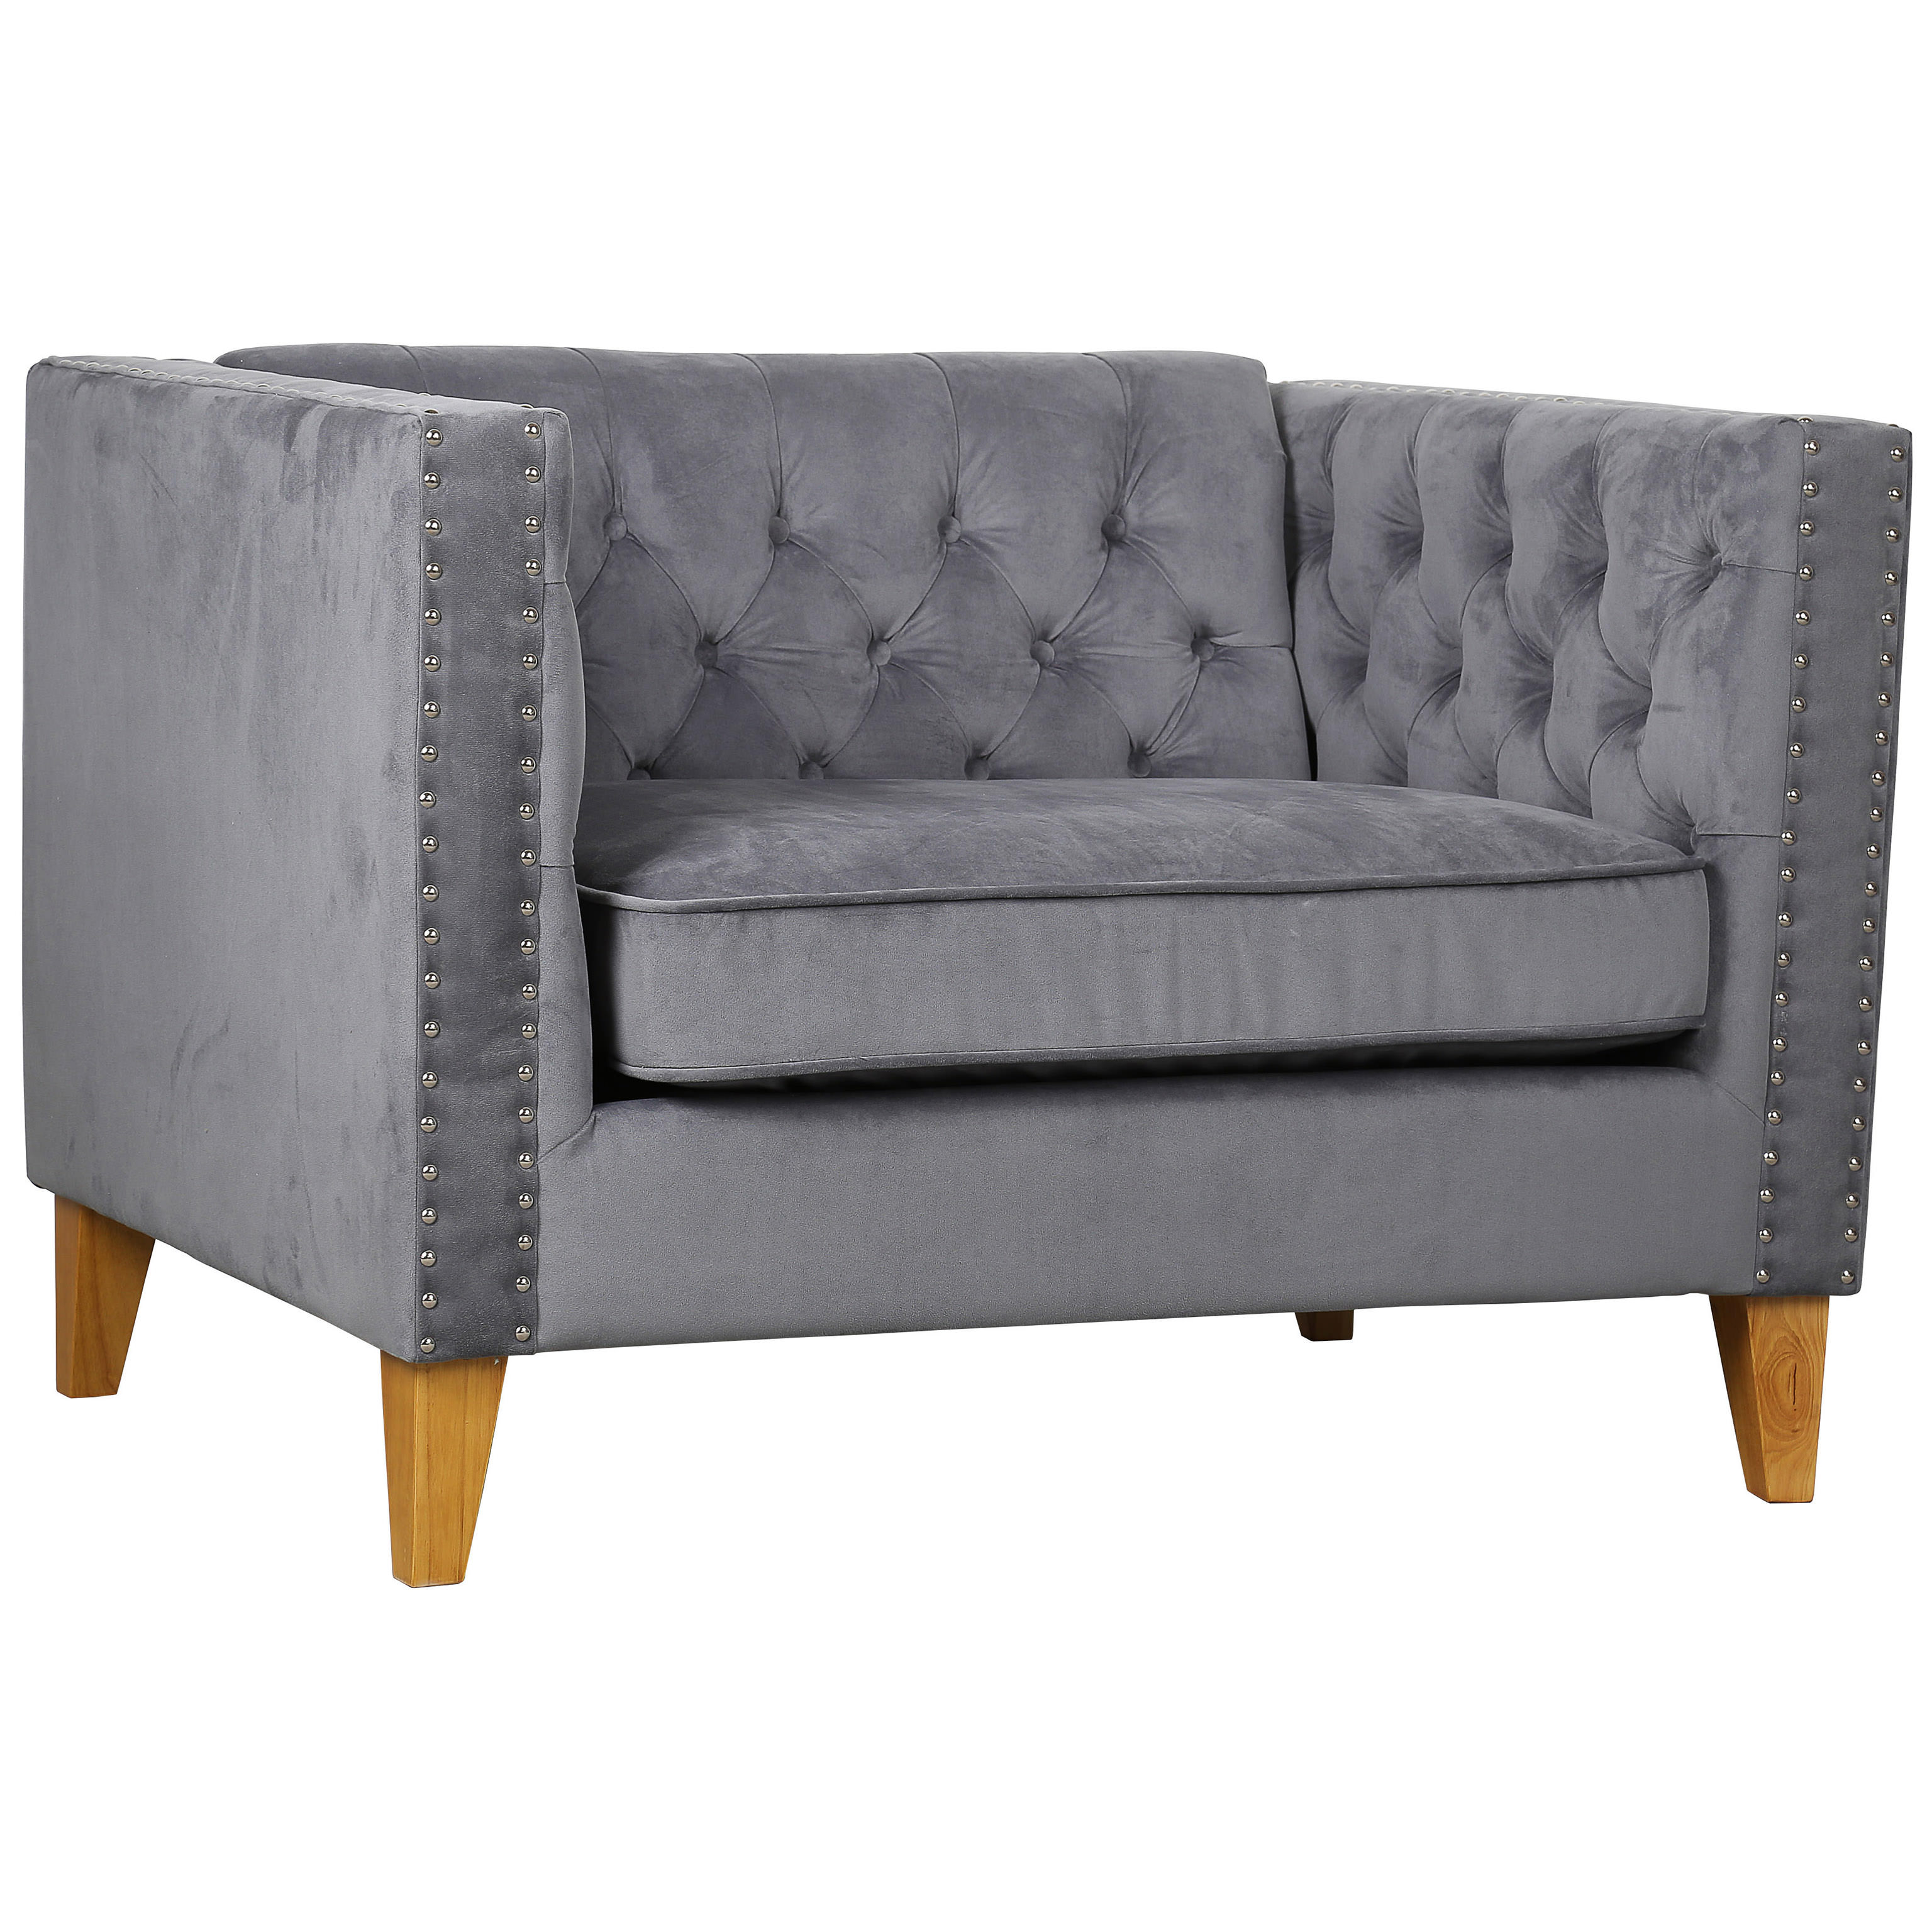 Merveilleux Description: Grey Velvet Armchair With Pin Tuck Button Detailing And  Squared Armrests. This One Seater Sofa Has Velvet Upholstery, Wooden Feet  And Would ...